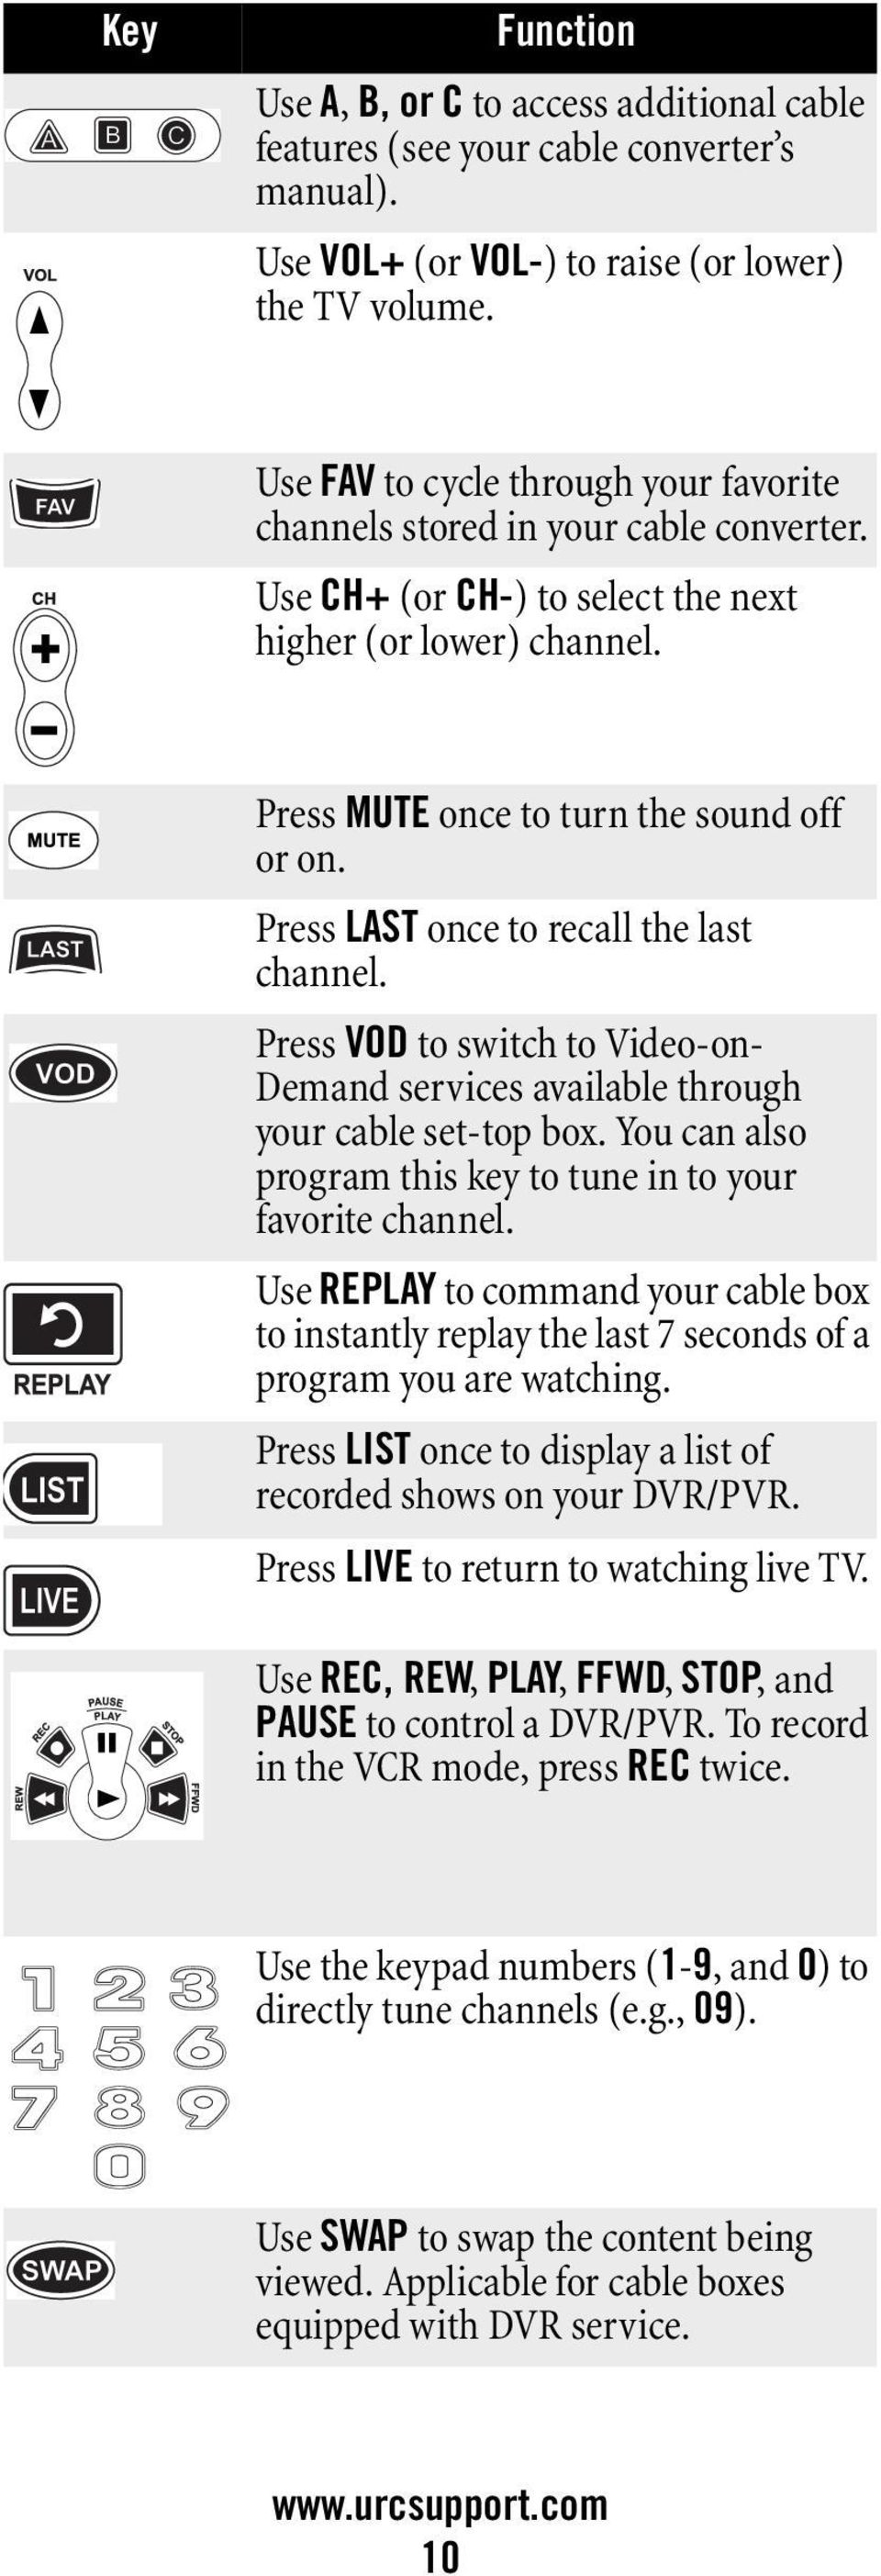 Press LAST once to recall the last channel. Press VOD to switch to Video-on- Demand services available through your cable set-top box.